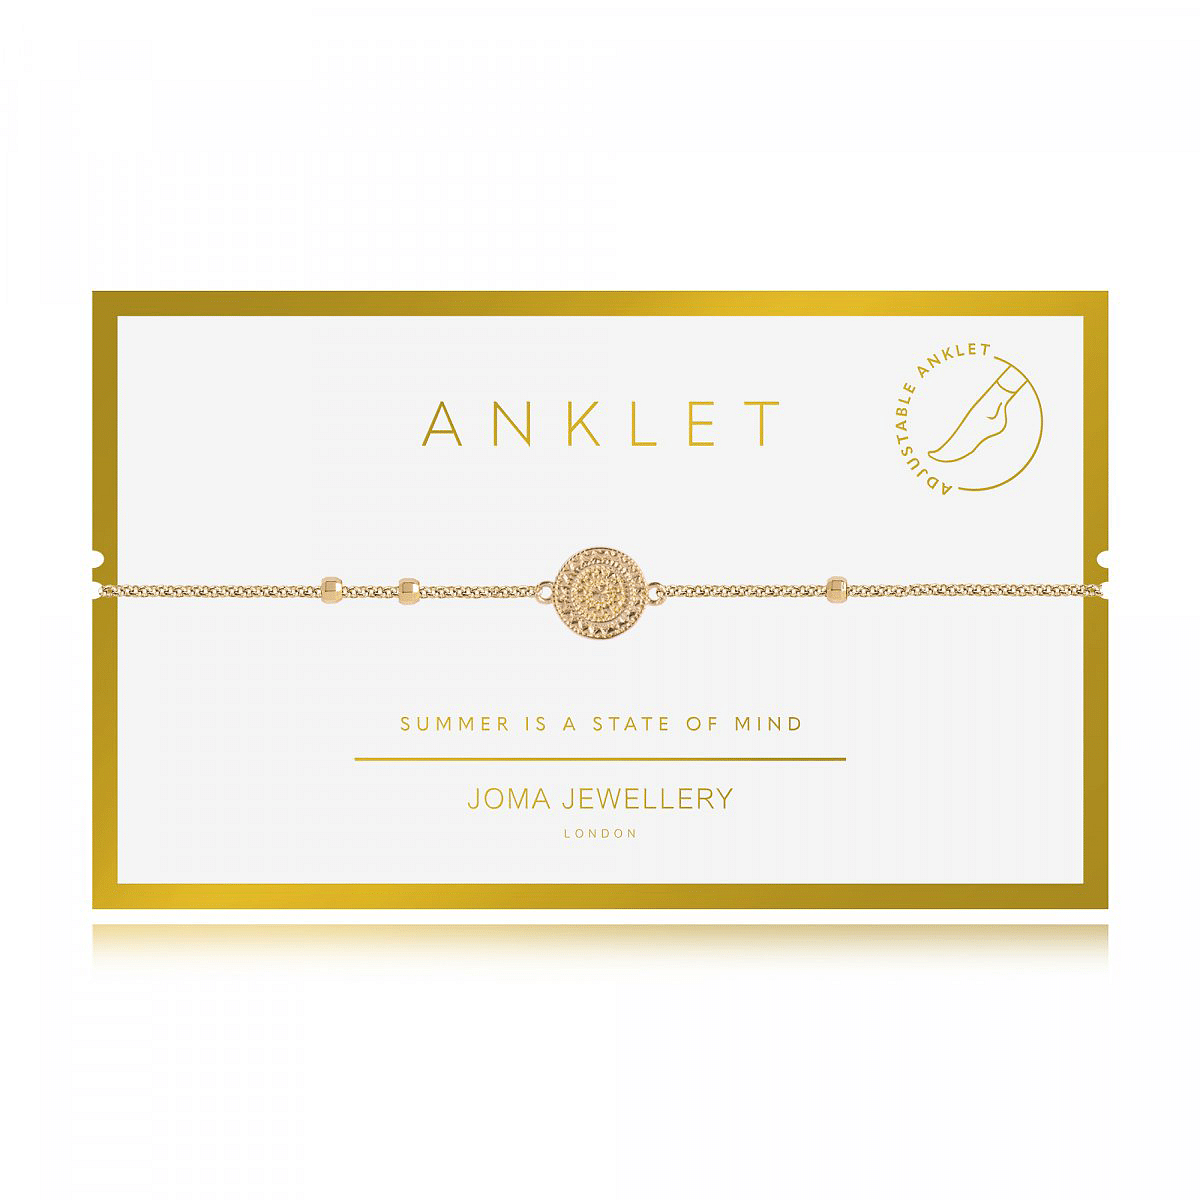 Anklet Gold Coin - Cotswold Jewellery